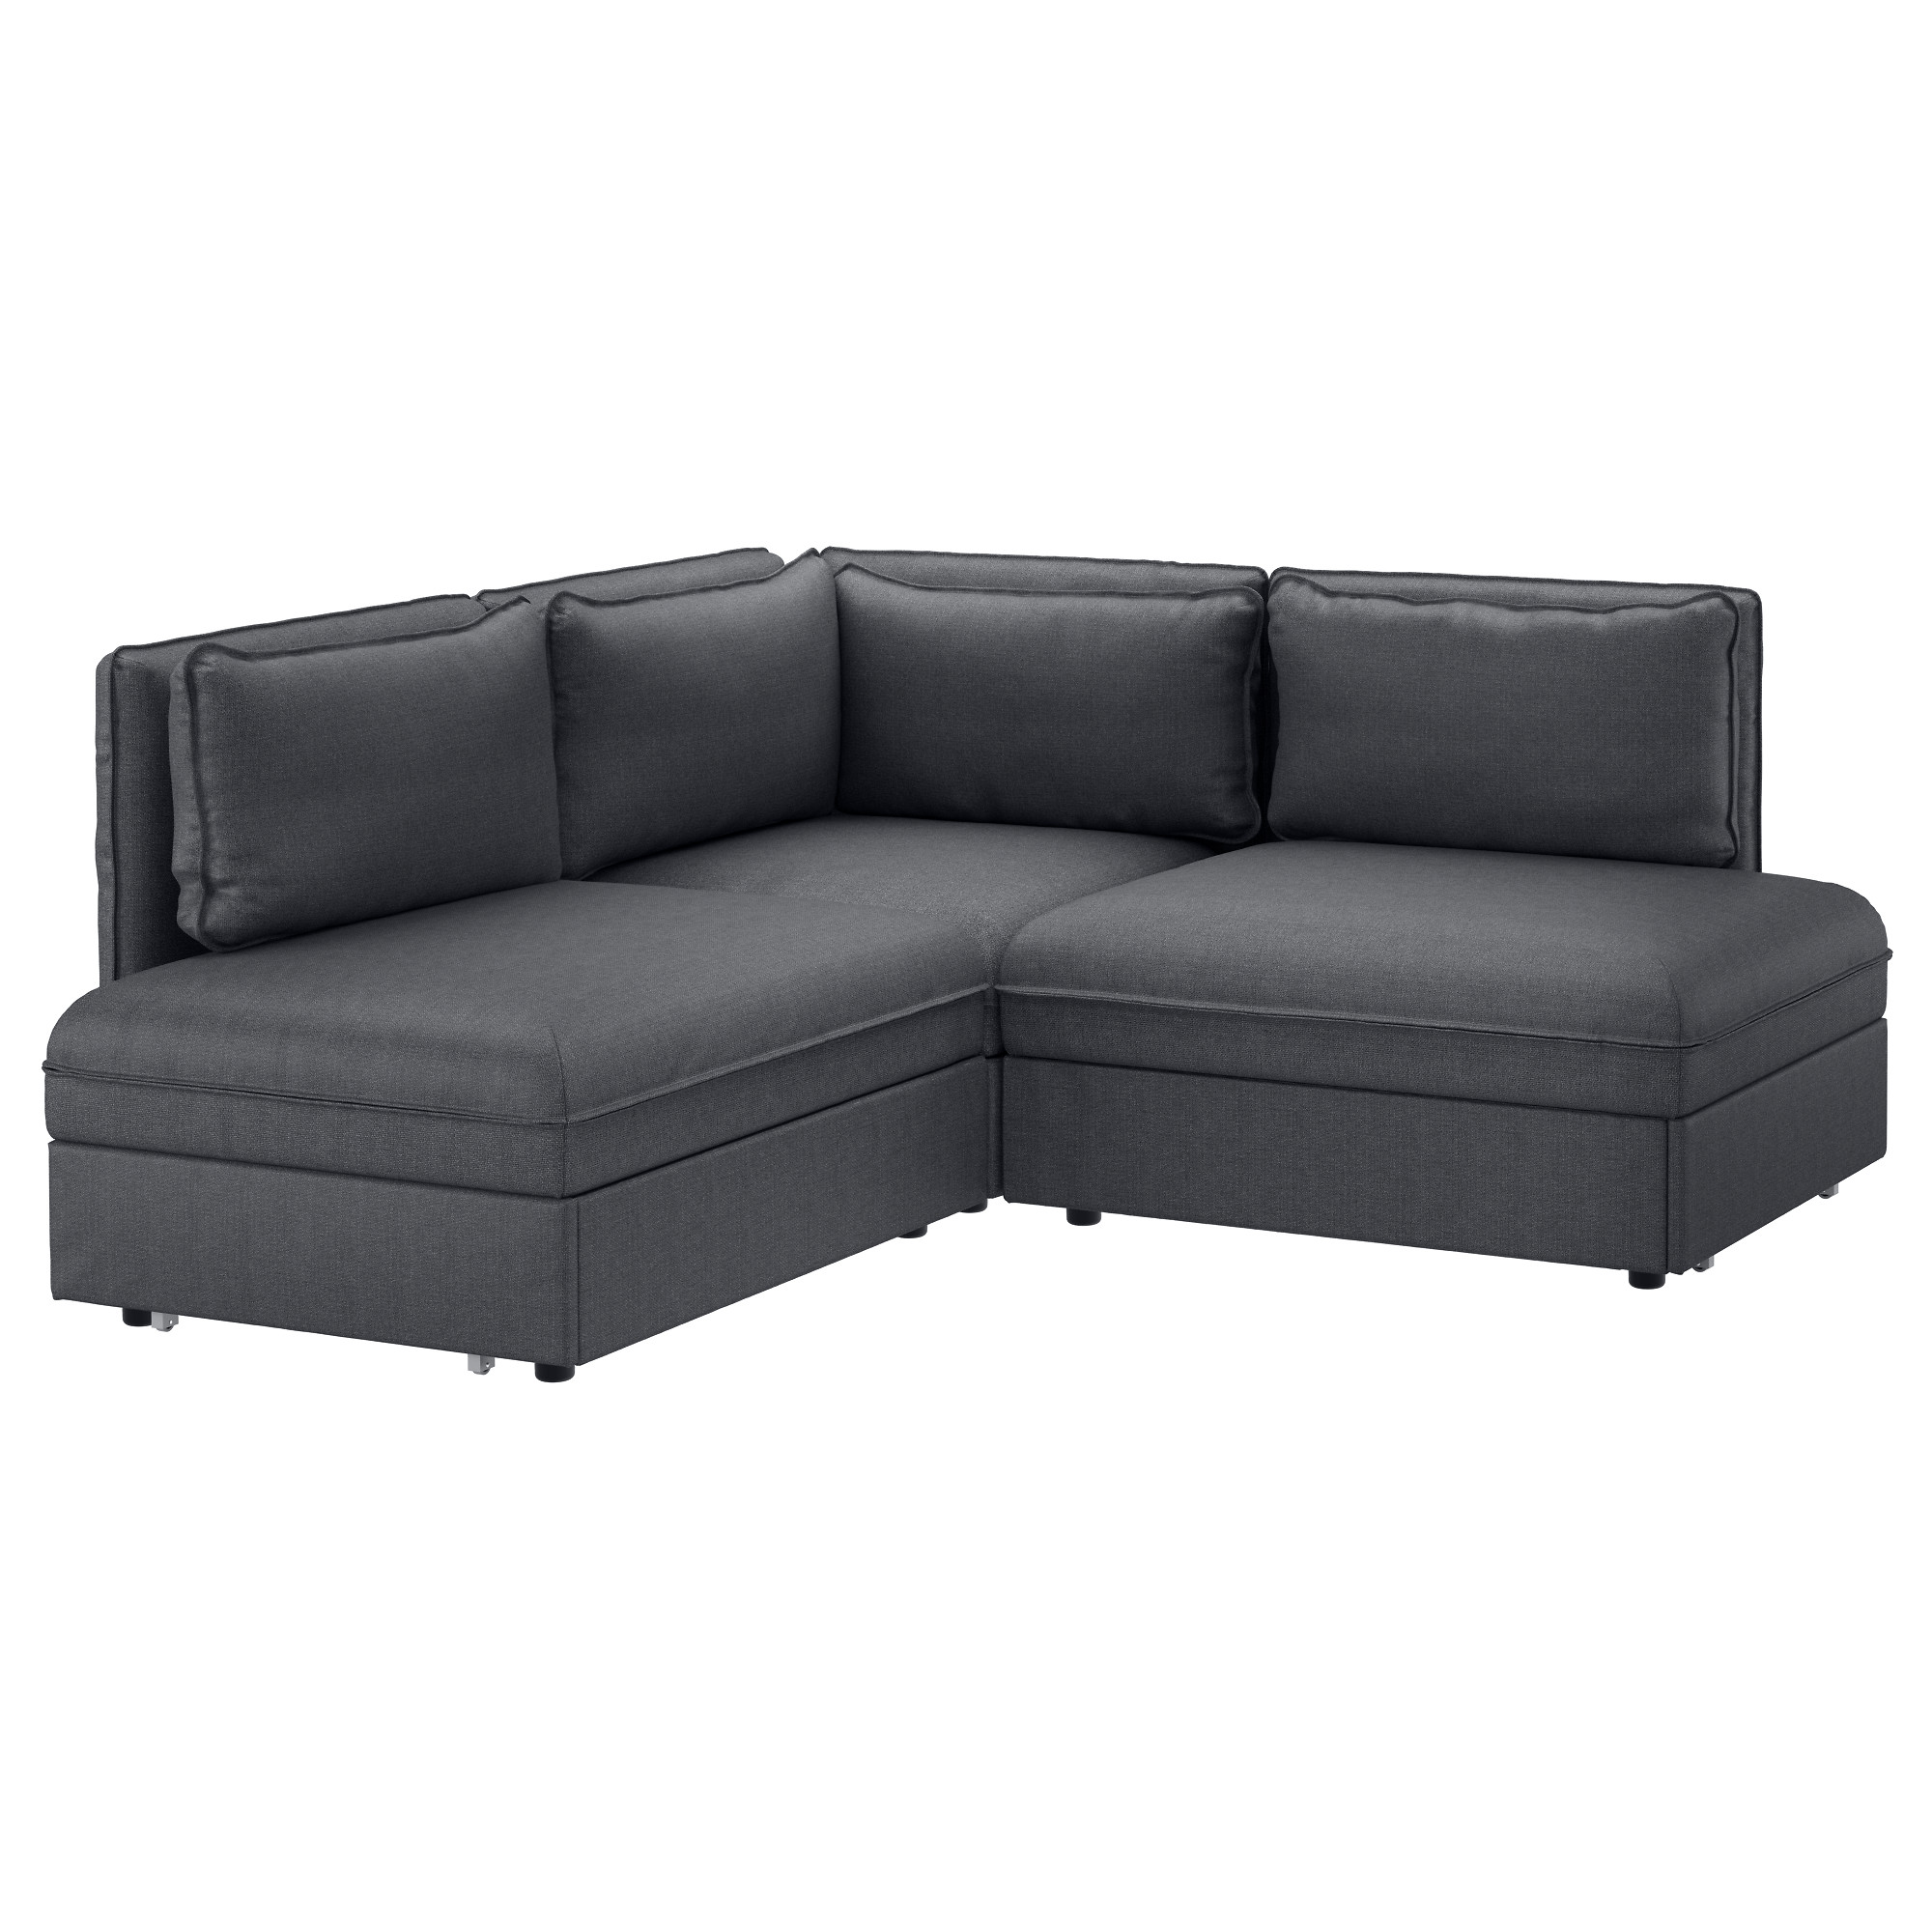 VALLENTUNA sleeper sectional 2-seat Hillared dark gray Width 76   Depth  sc 1 st  Ikea : sectional couch bed - Sectionals, Sofas & Couches